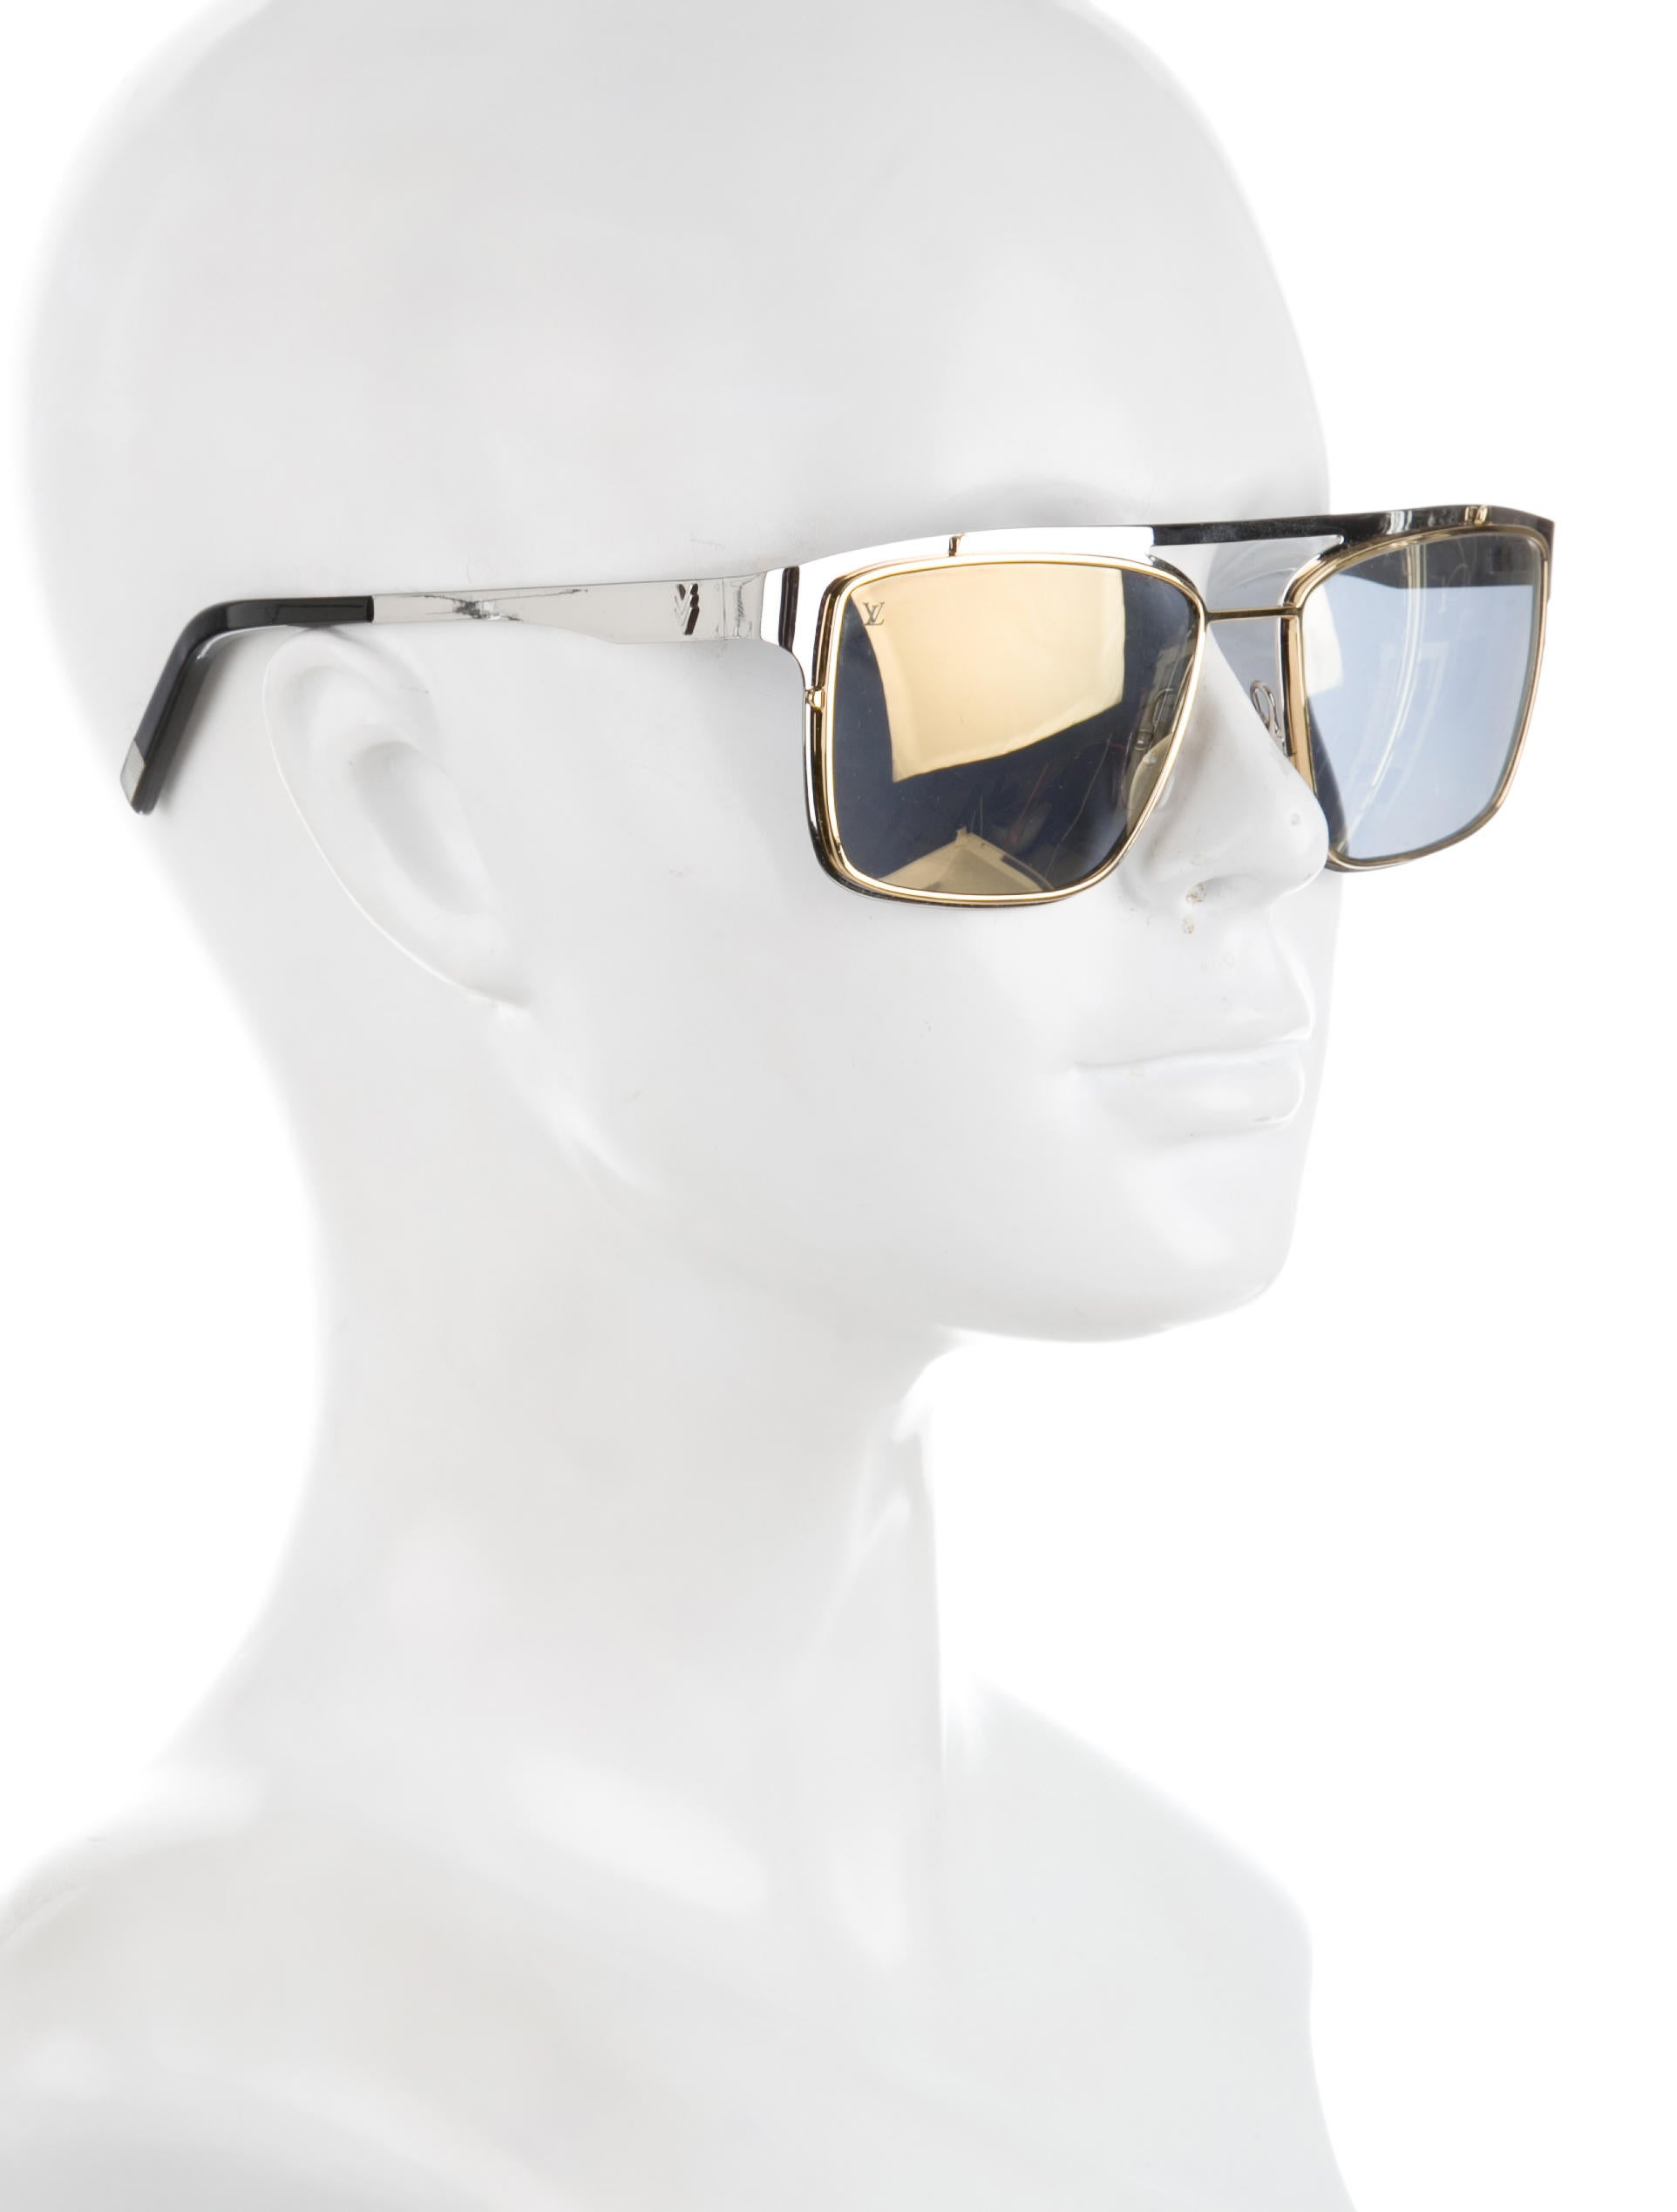 Louis Vuitton Gold Frame Sunglasses : Louis Vuitton Odyssee Sunglasses - Accessories - LOU112676 ...